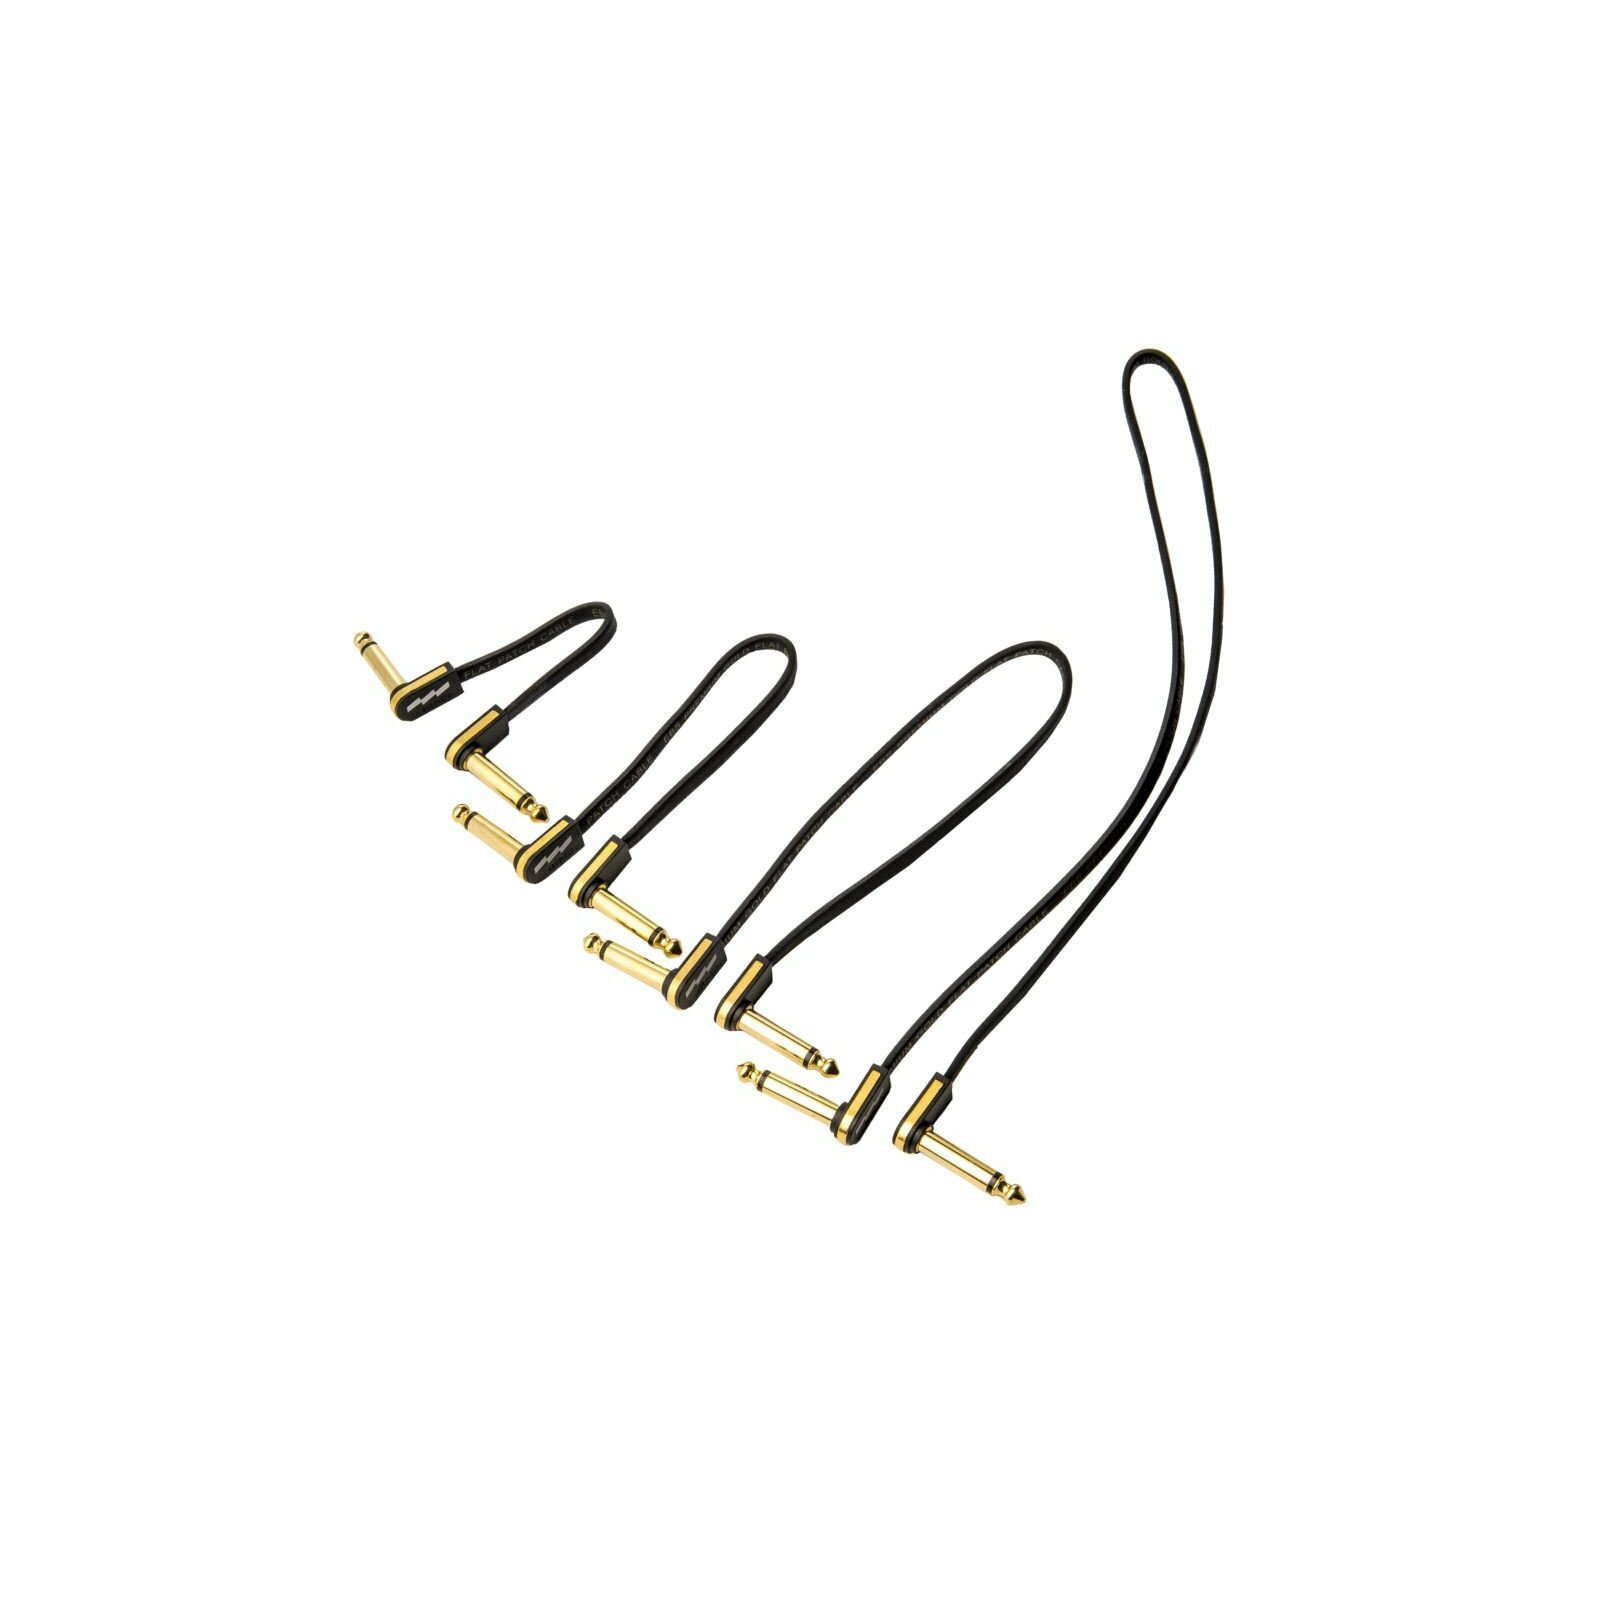 EBS 58CM GOLD PLATED PREMIUM PATCH CABLE